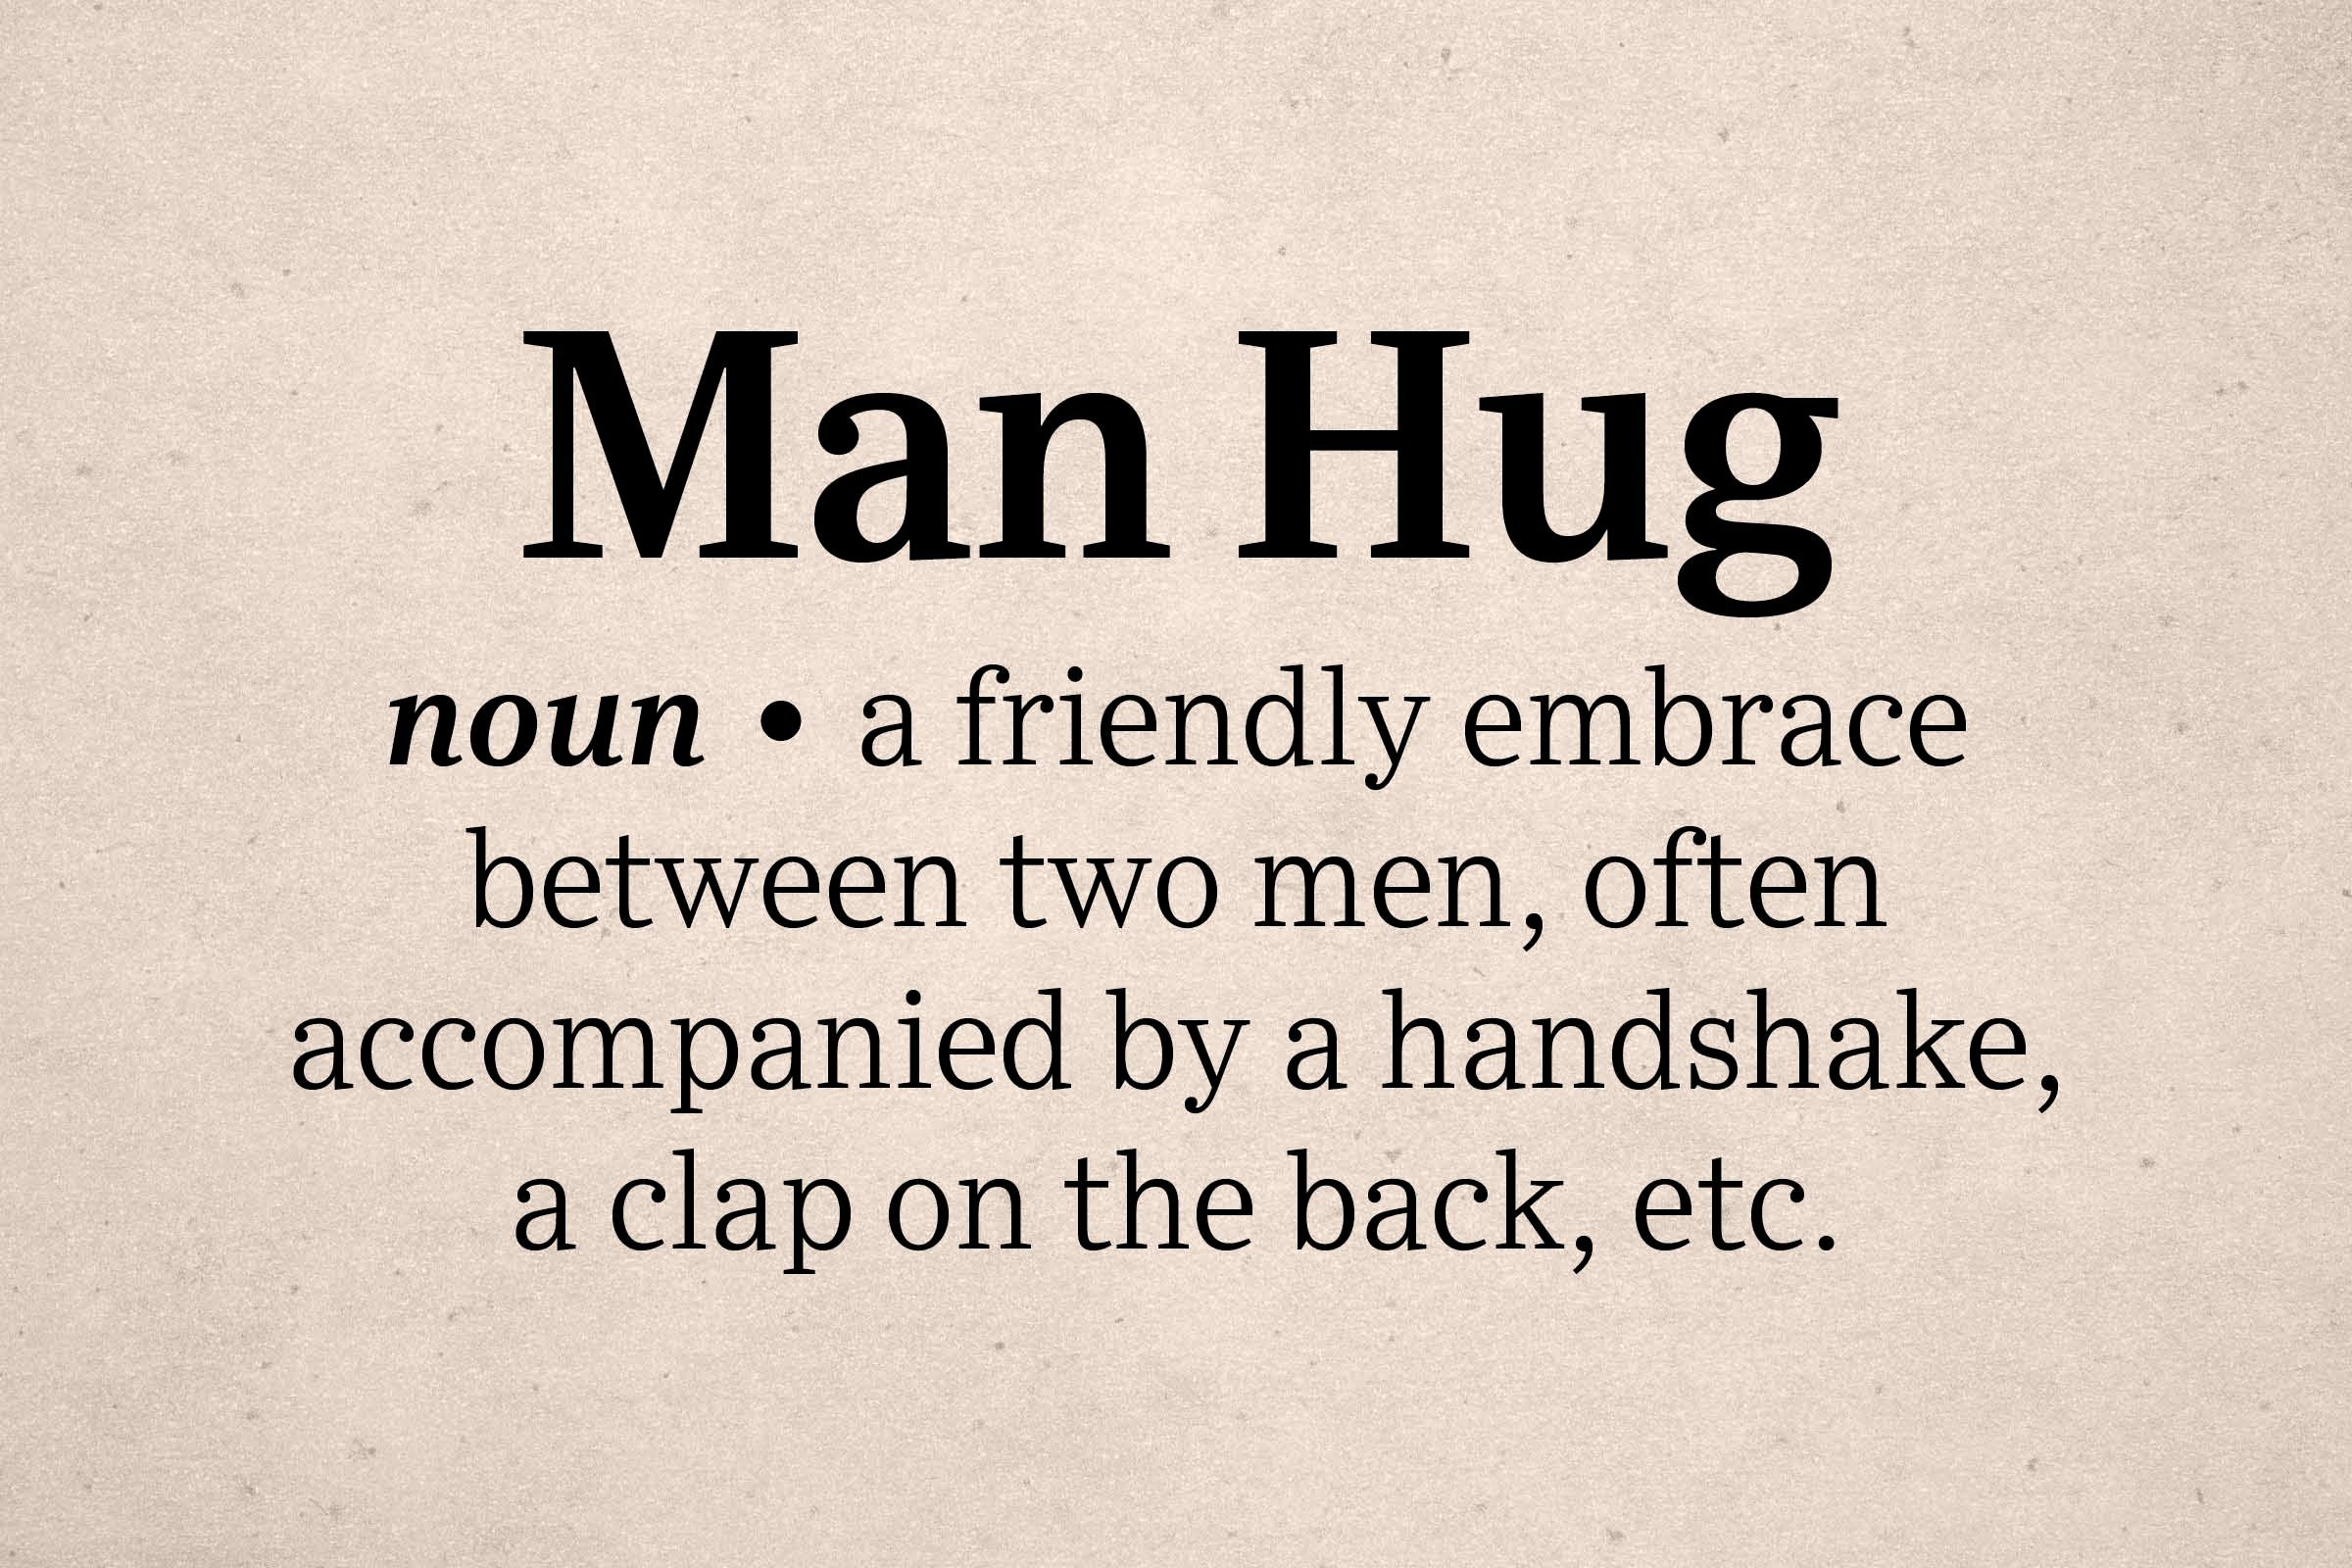 12 Funniest New Words Added to the Dictionary in 2020 - Man Hug